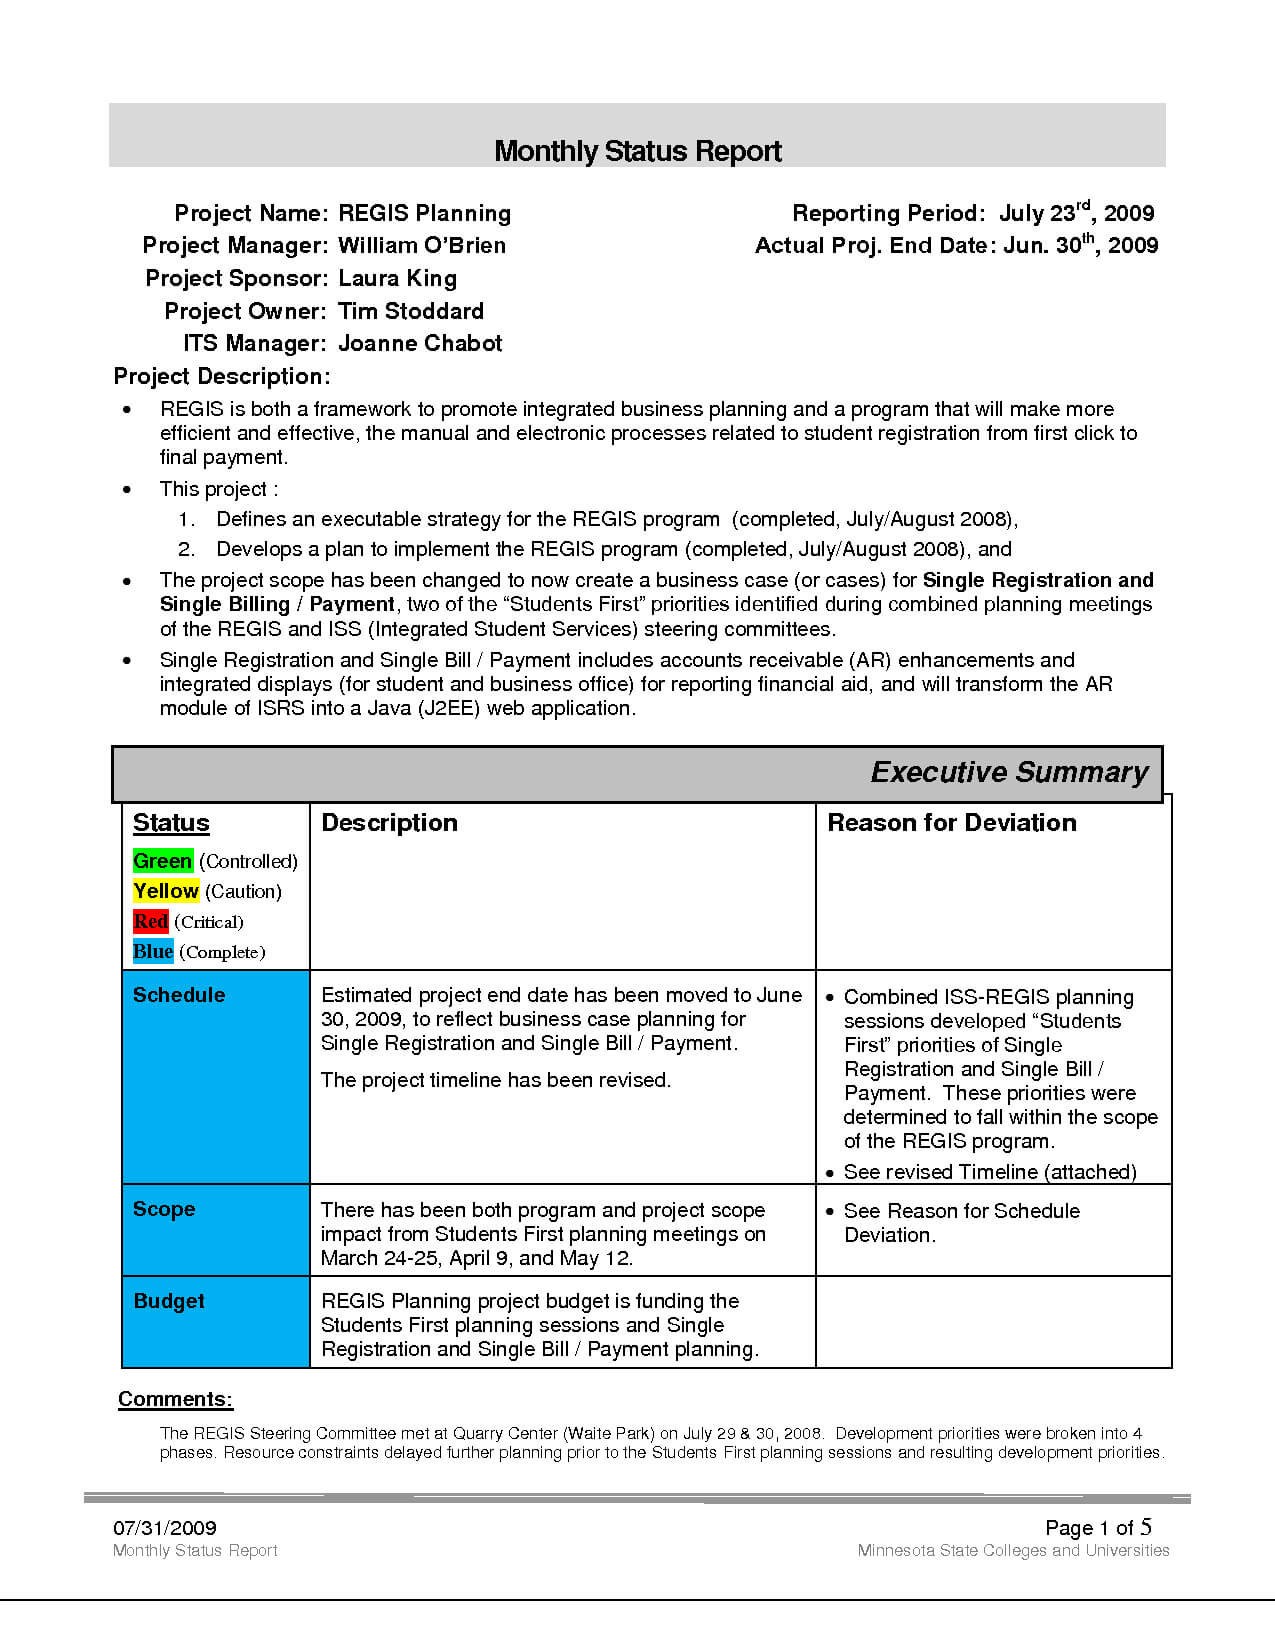 Research Project Report Template - Atlantaauctionco For Research Project Report Template